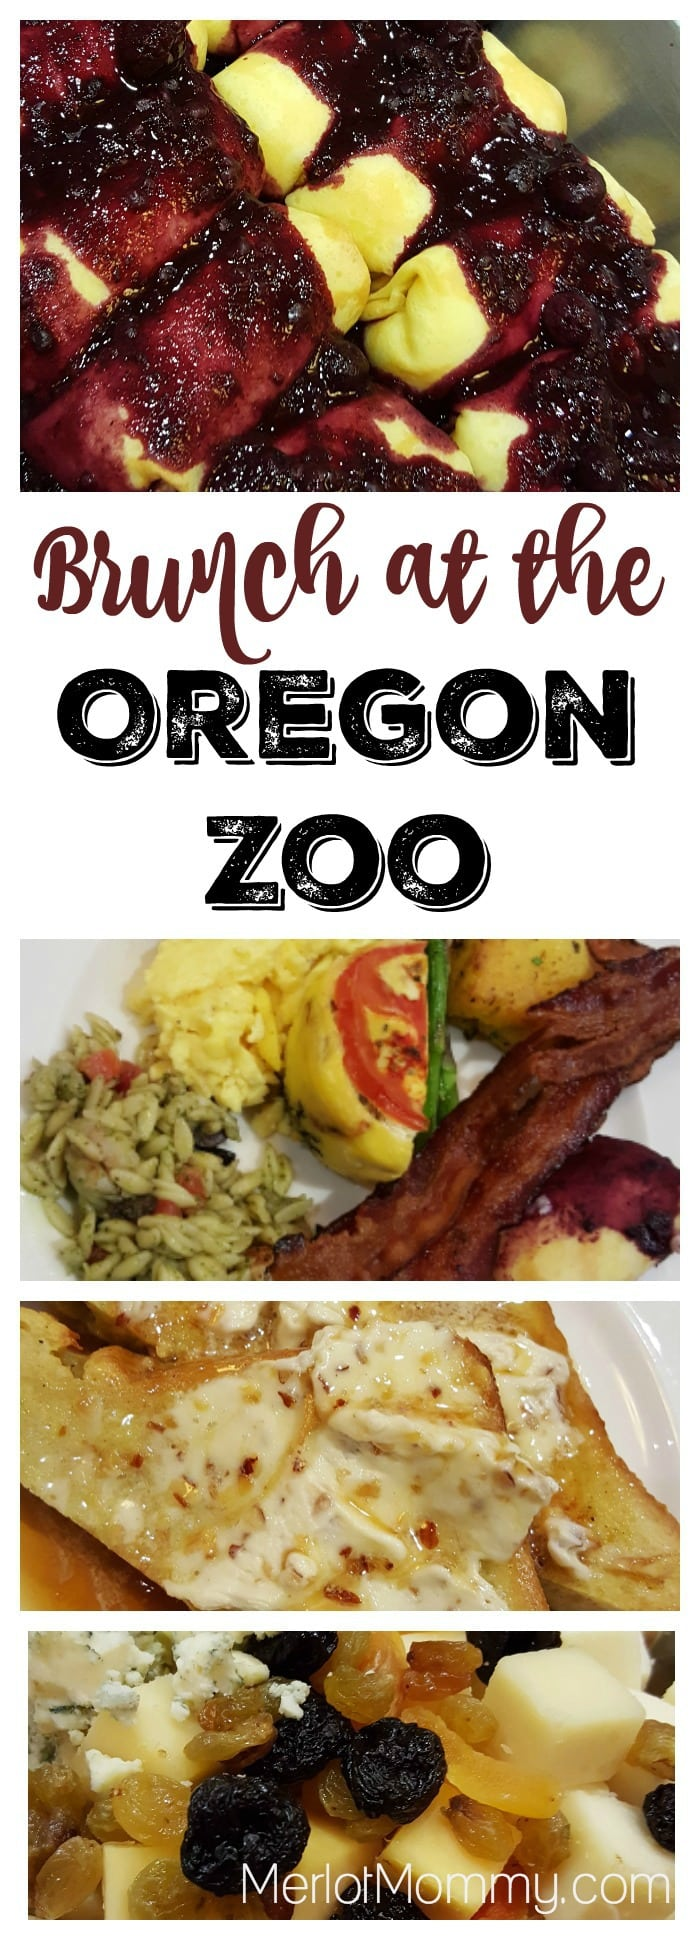 Brunch at the Oregon Zoo for Mother's Day